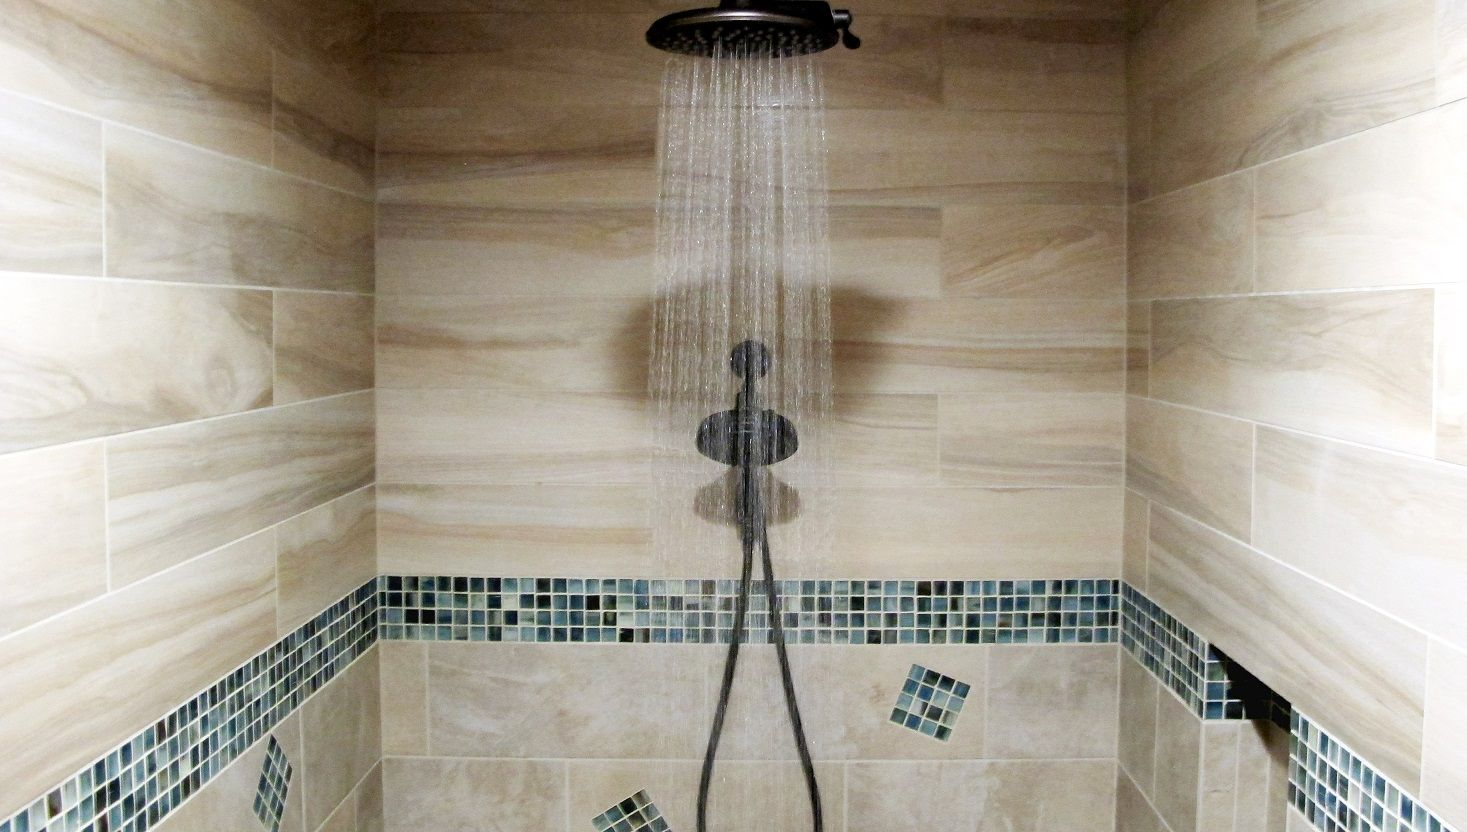 Decorative Shower Tile Large Walk In Steam Shower Decorative Glass Band Border Mosaic